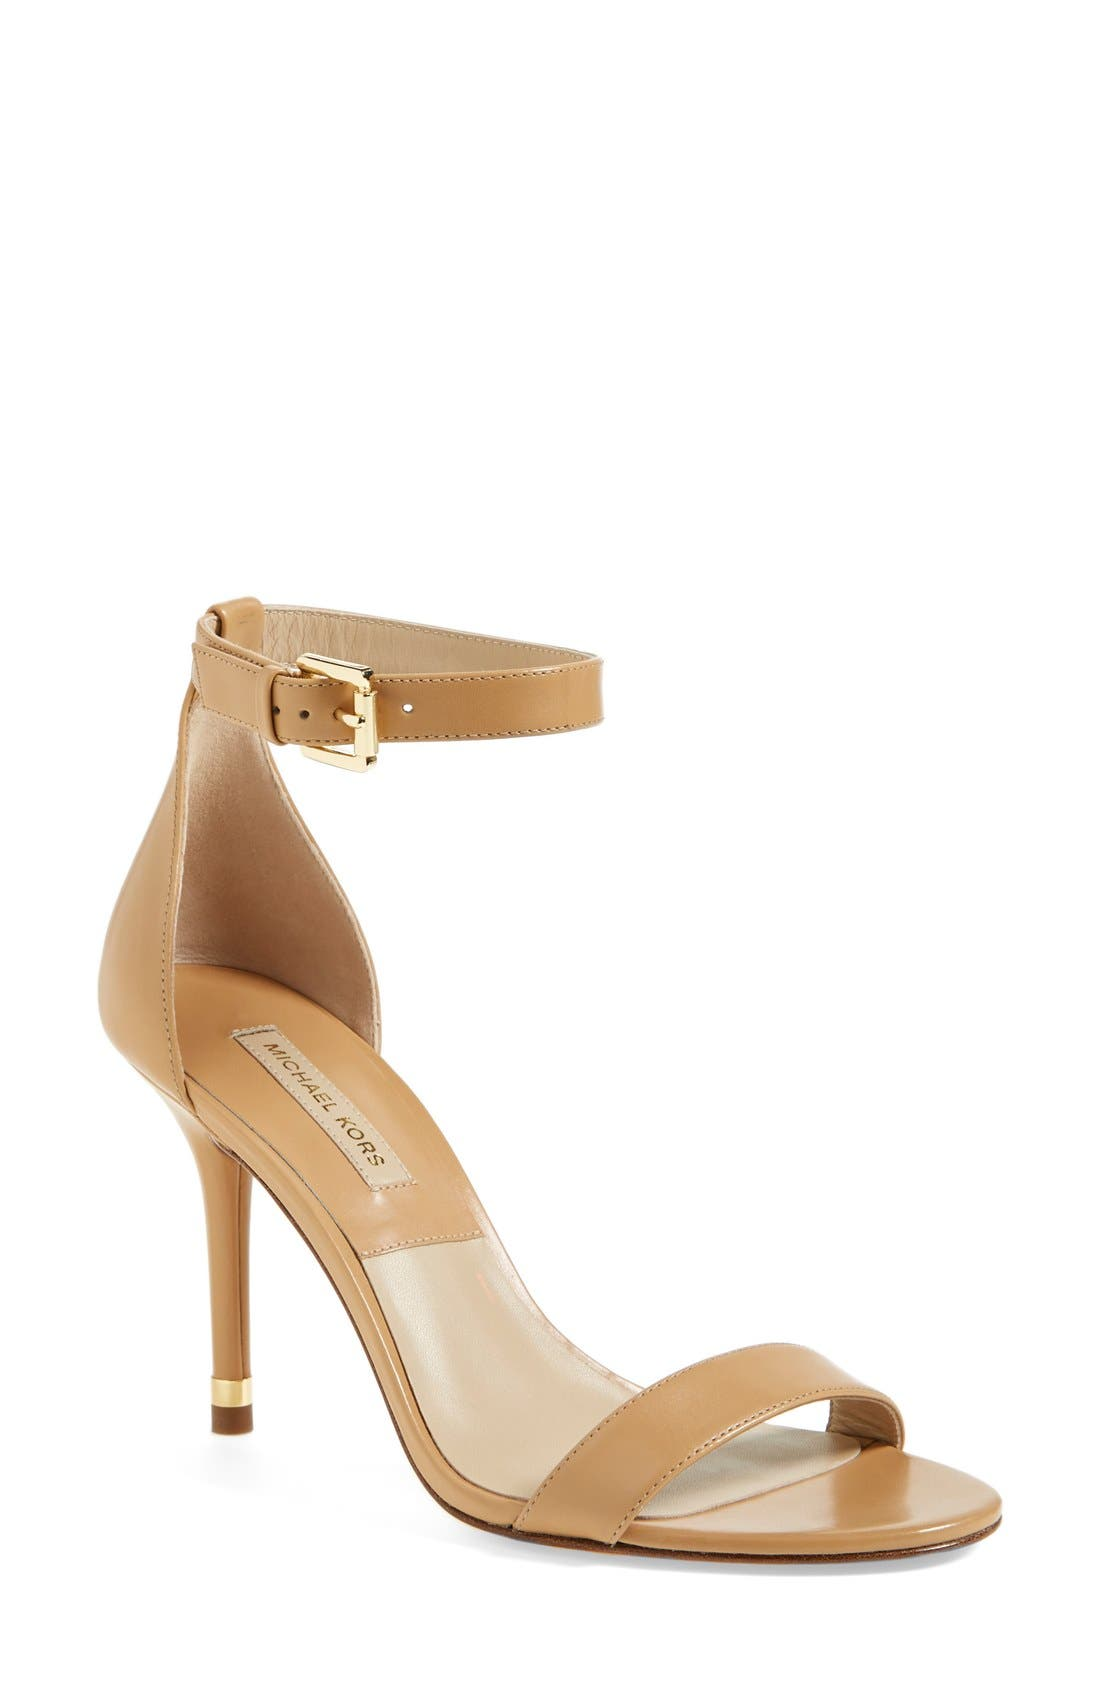 Alternate Image 1 Selected - KORS Michael Kors 'Suri' Leather Sandal (Women)